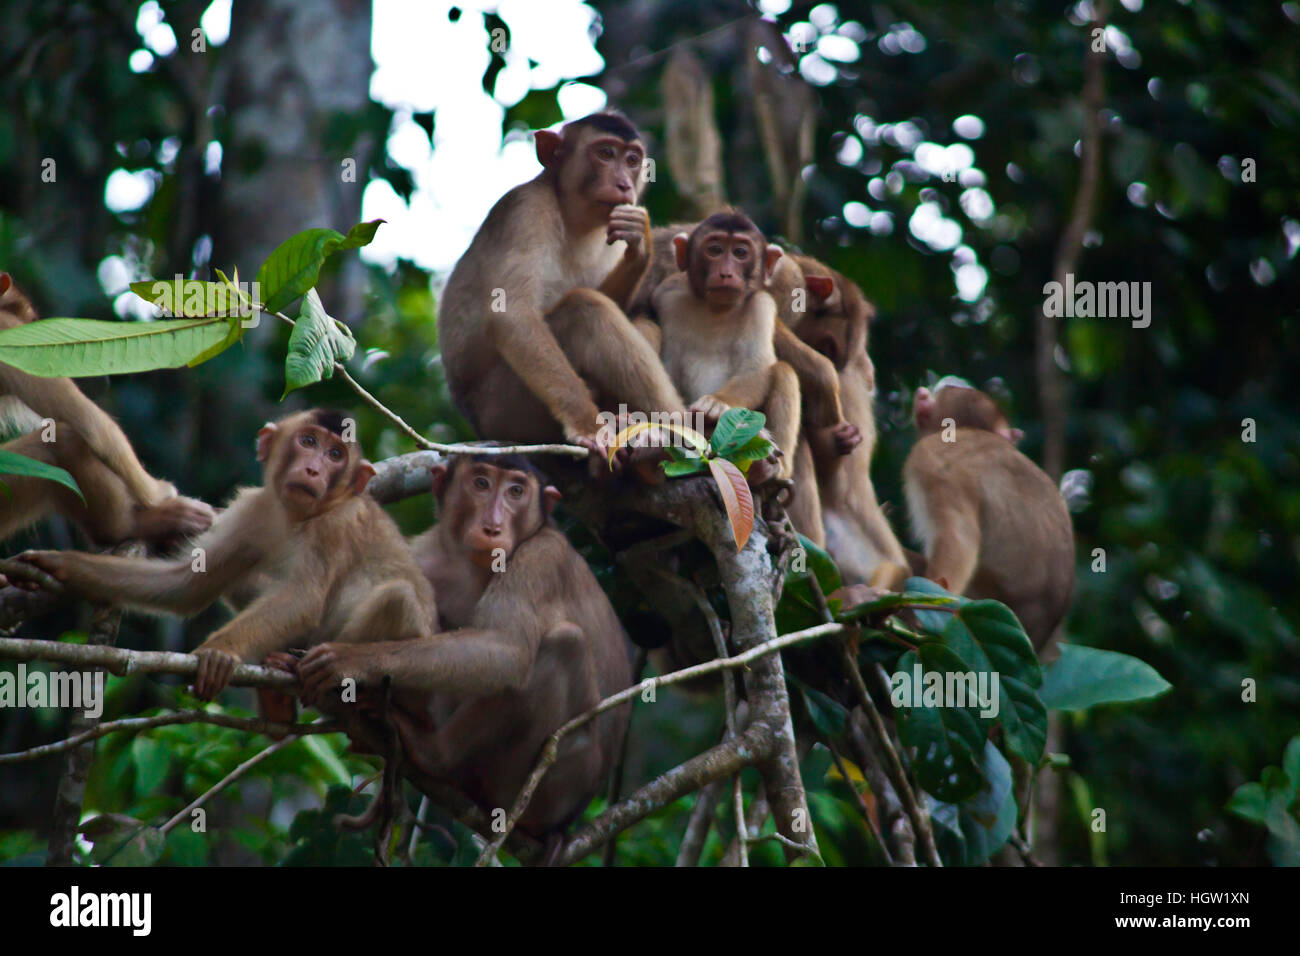 A Troupe Of Short Tailed Or Stump Tailed Macaques, Macaca Arctoices, In The Kinabatangan River Wildlife Sanctuary, Stock Photo